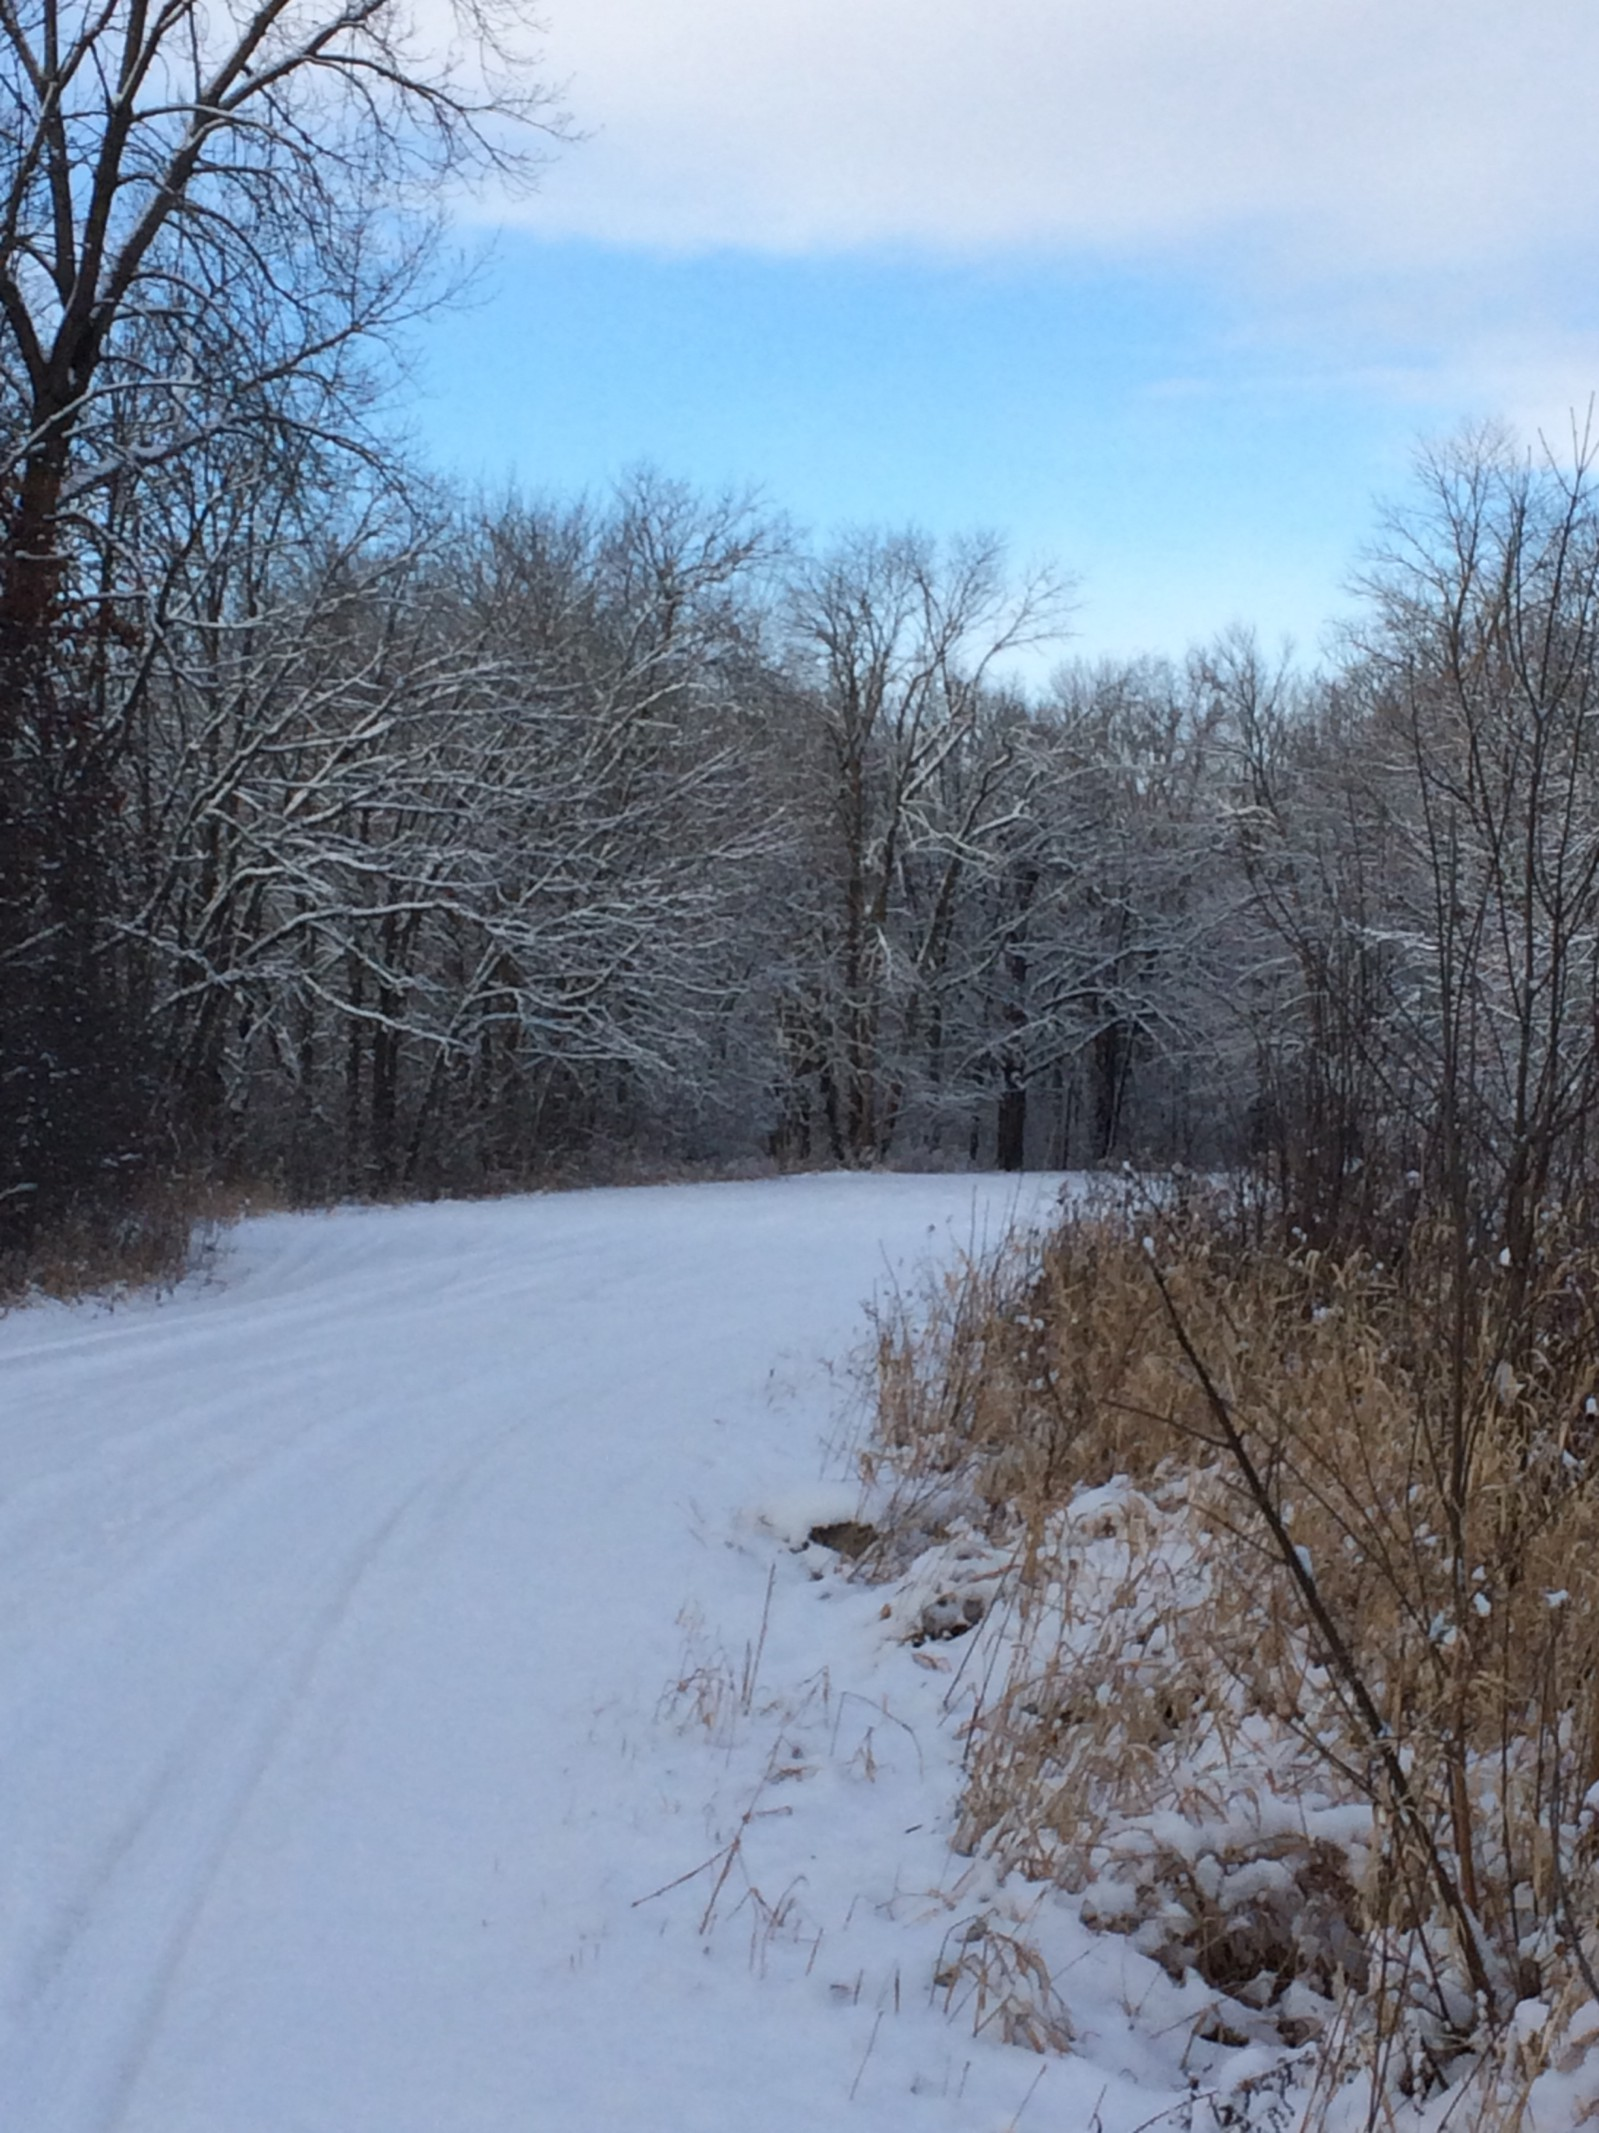 What Little Snow Weve Had This Winter >> Looks Like You Have As Much Snow As We Do Gail Boenning Medium